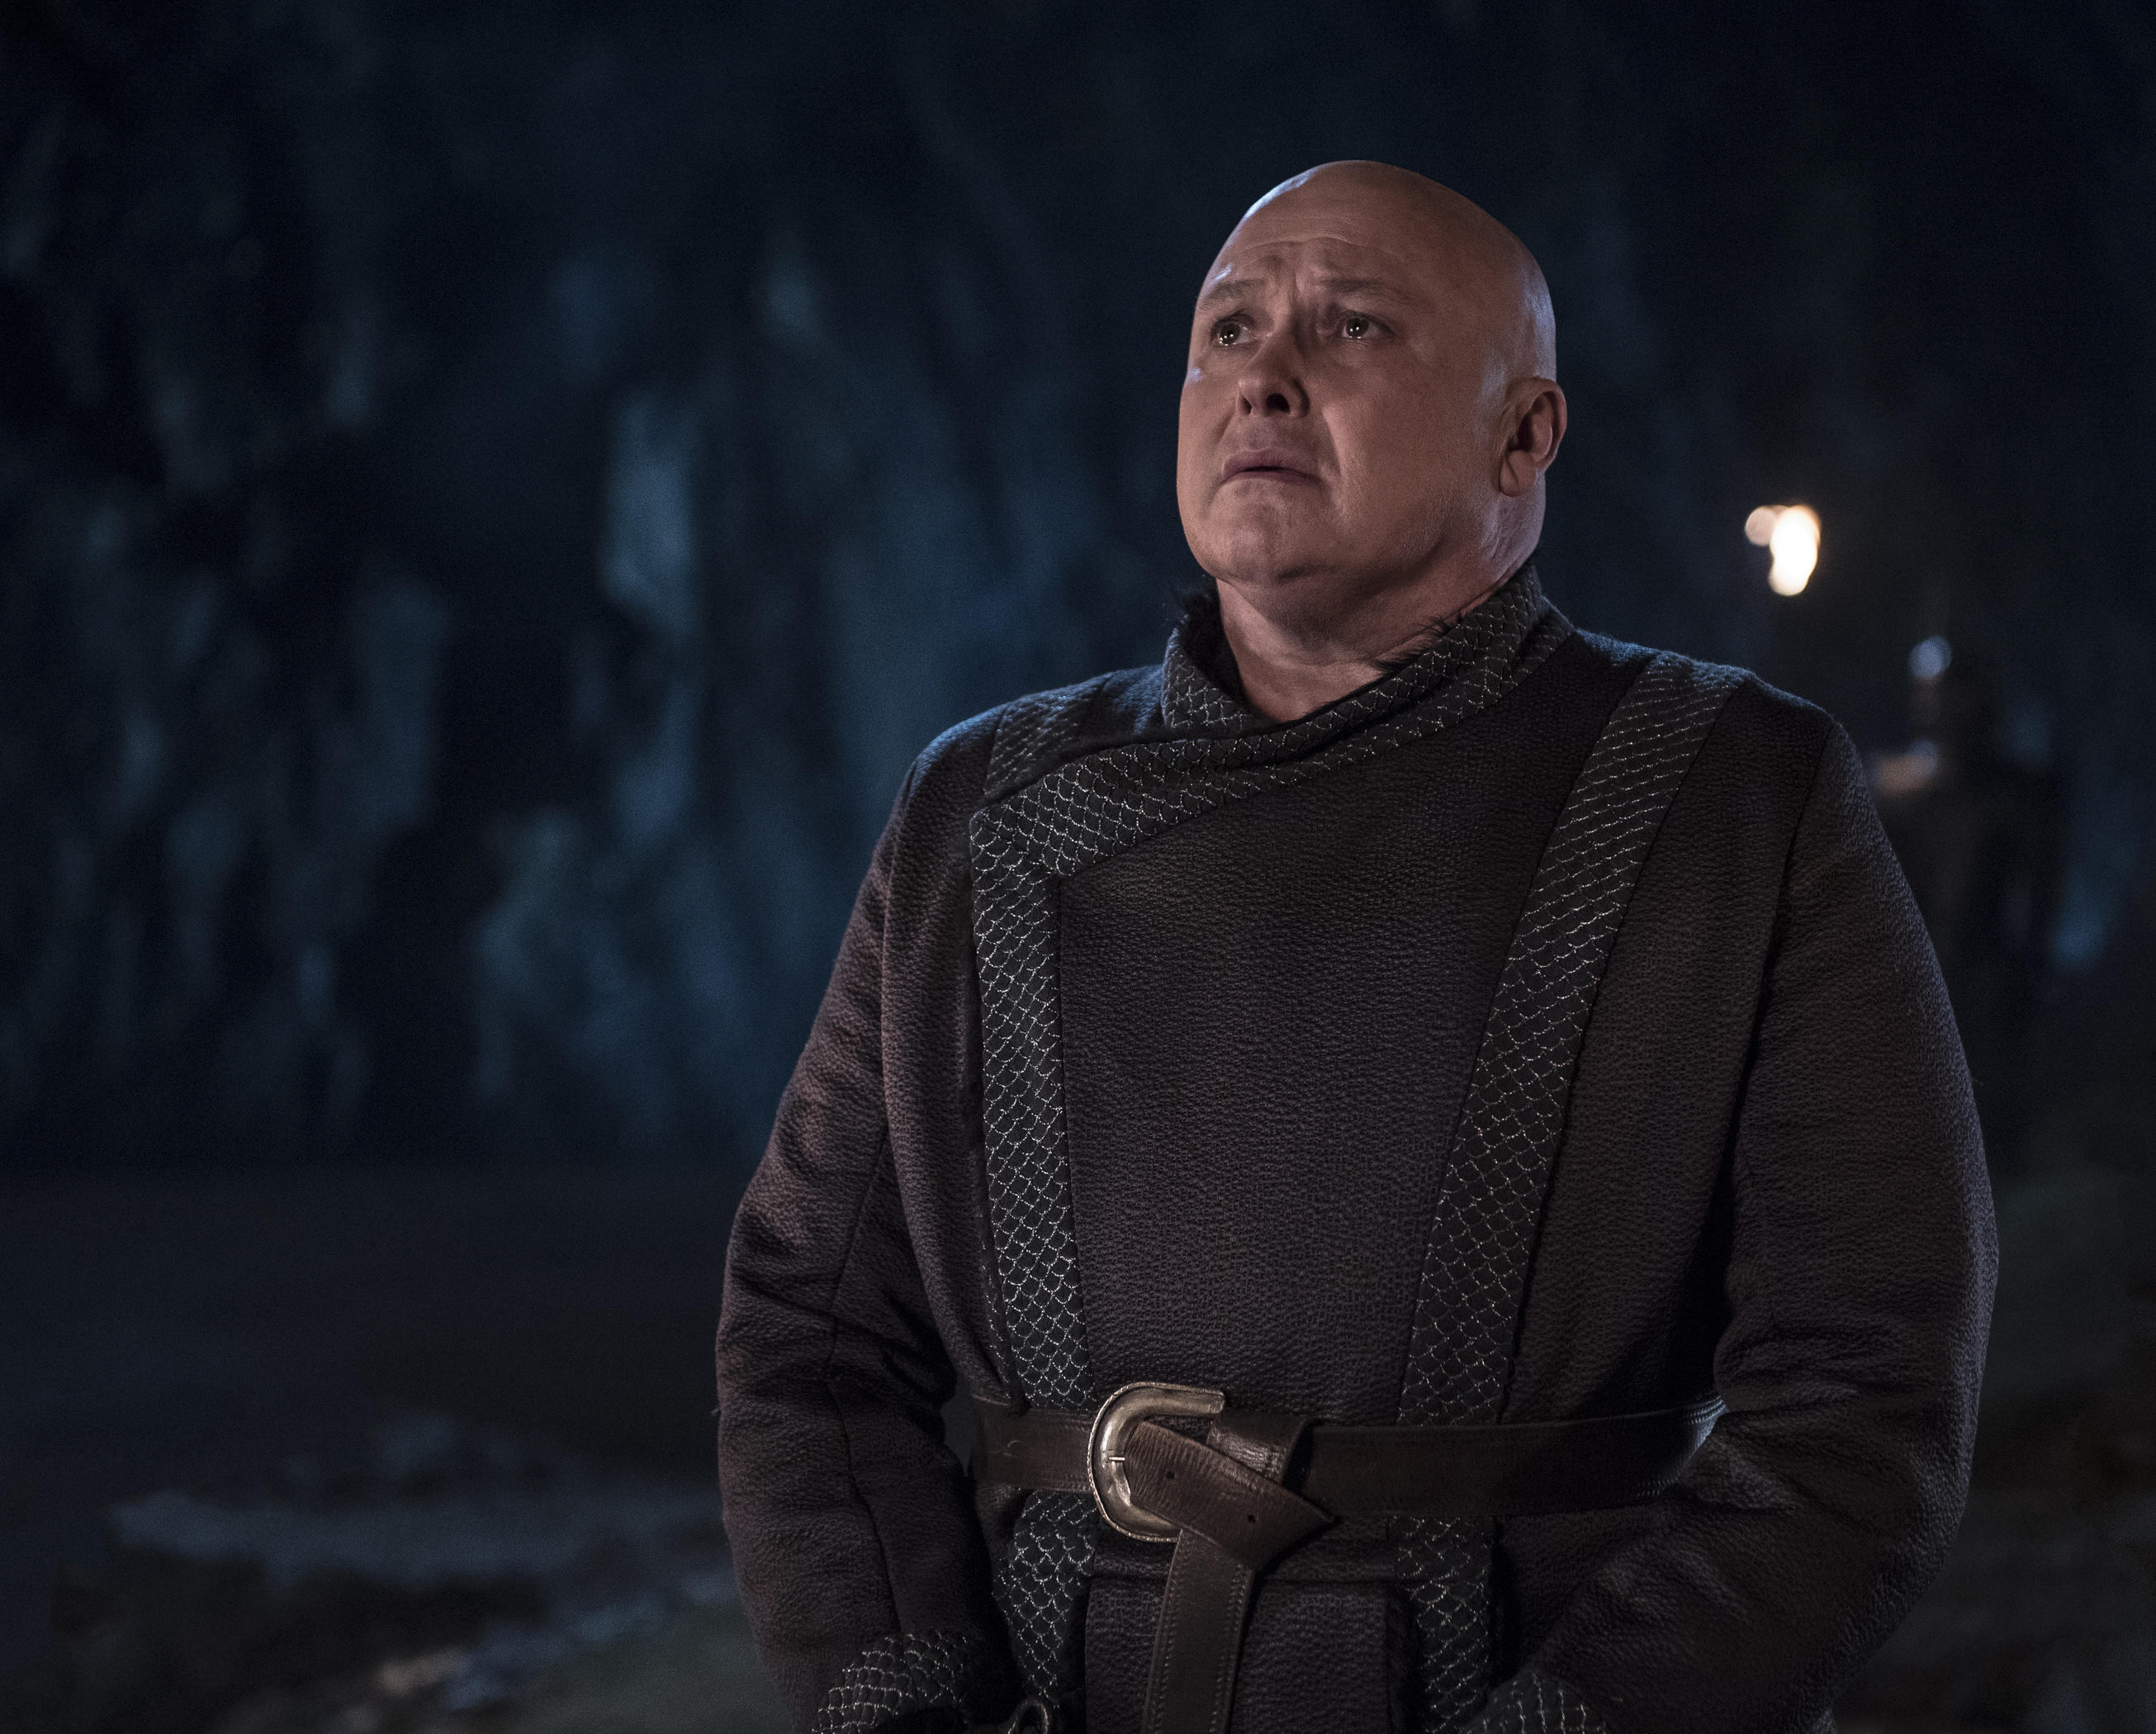 game-of-thrones-season-8-episode-5-varys-alone-end